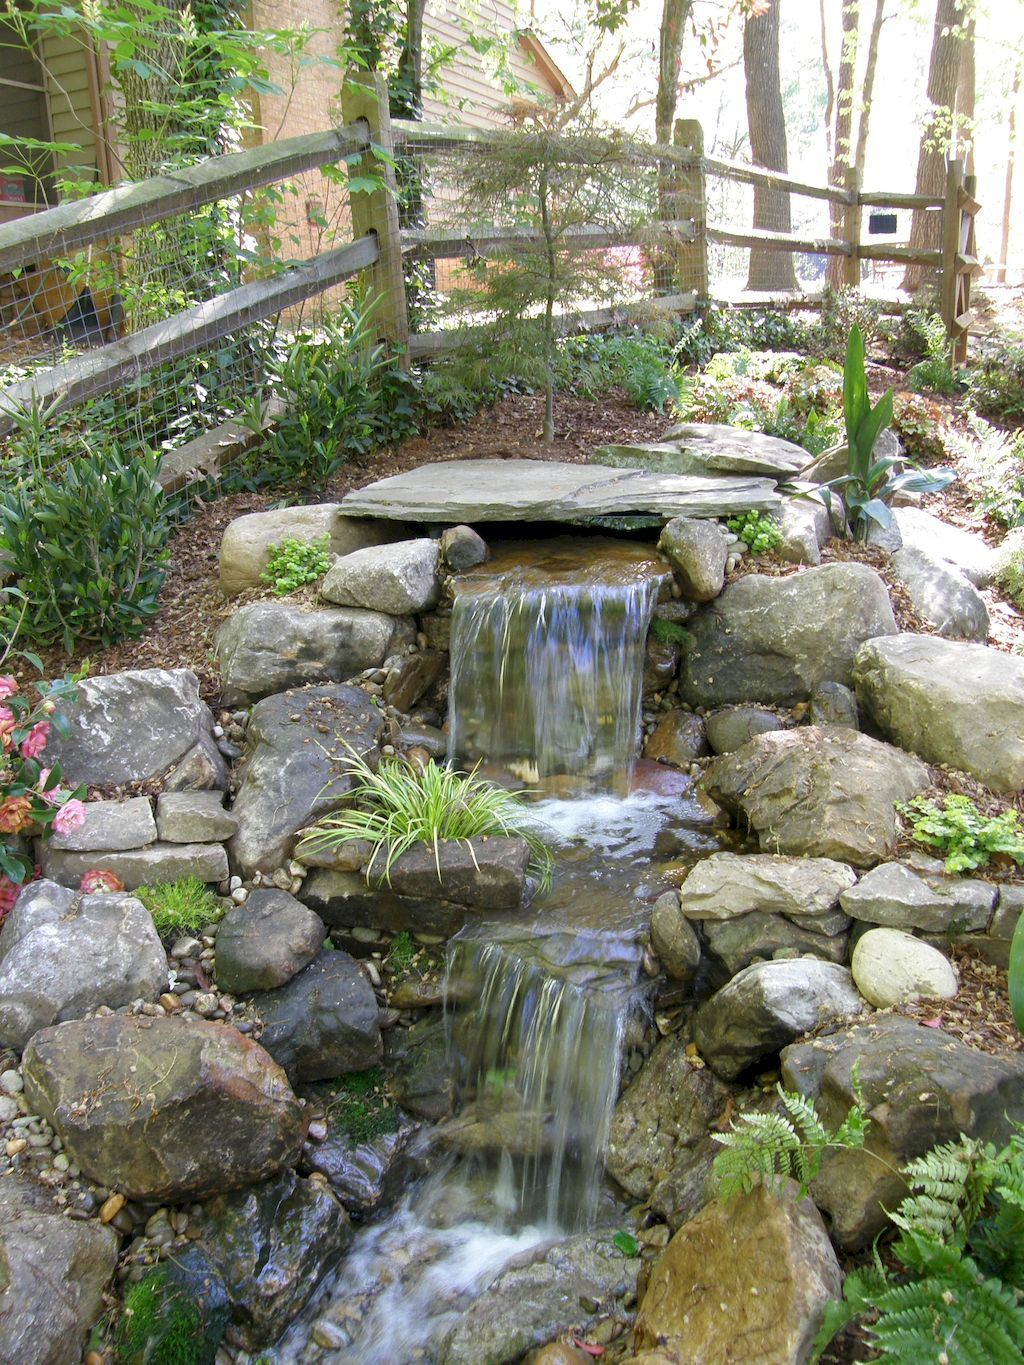 Adorable 55 Small Backyard Waterfall Design Ideas https://wholiving.com/55 - Pin By Gardening On Nice Pins Pinterest Ponds Backyard, Garden